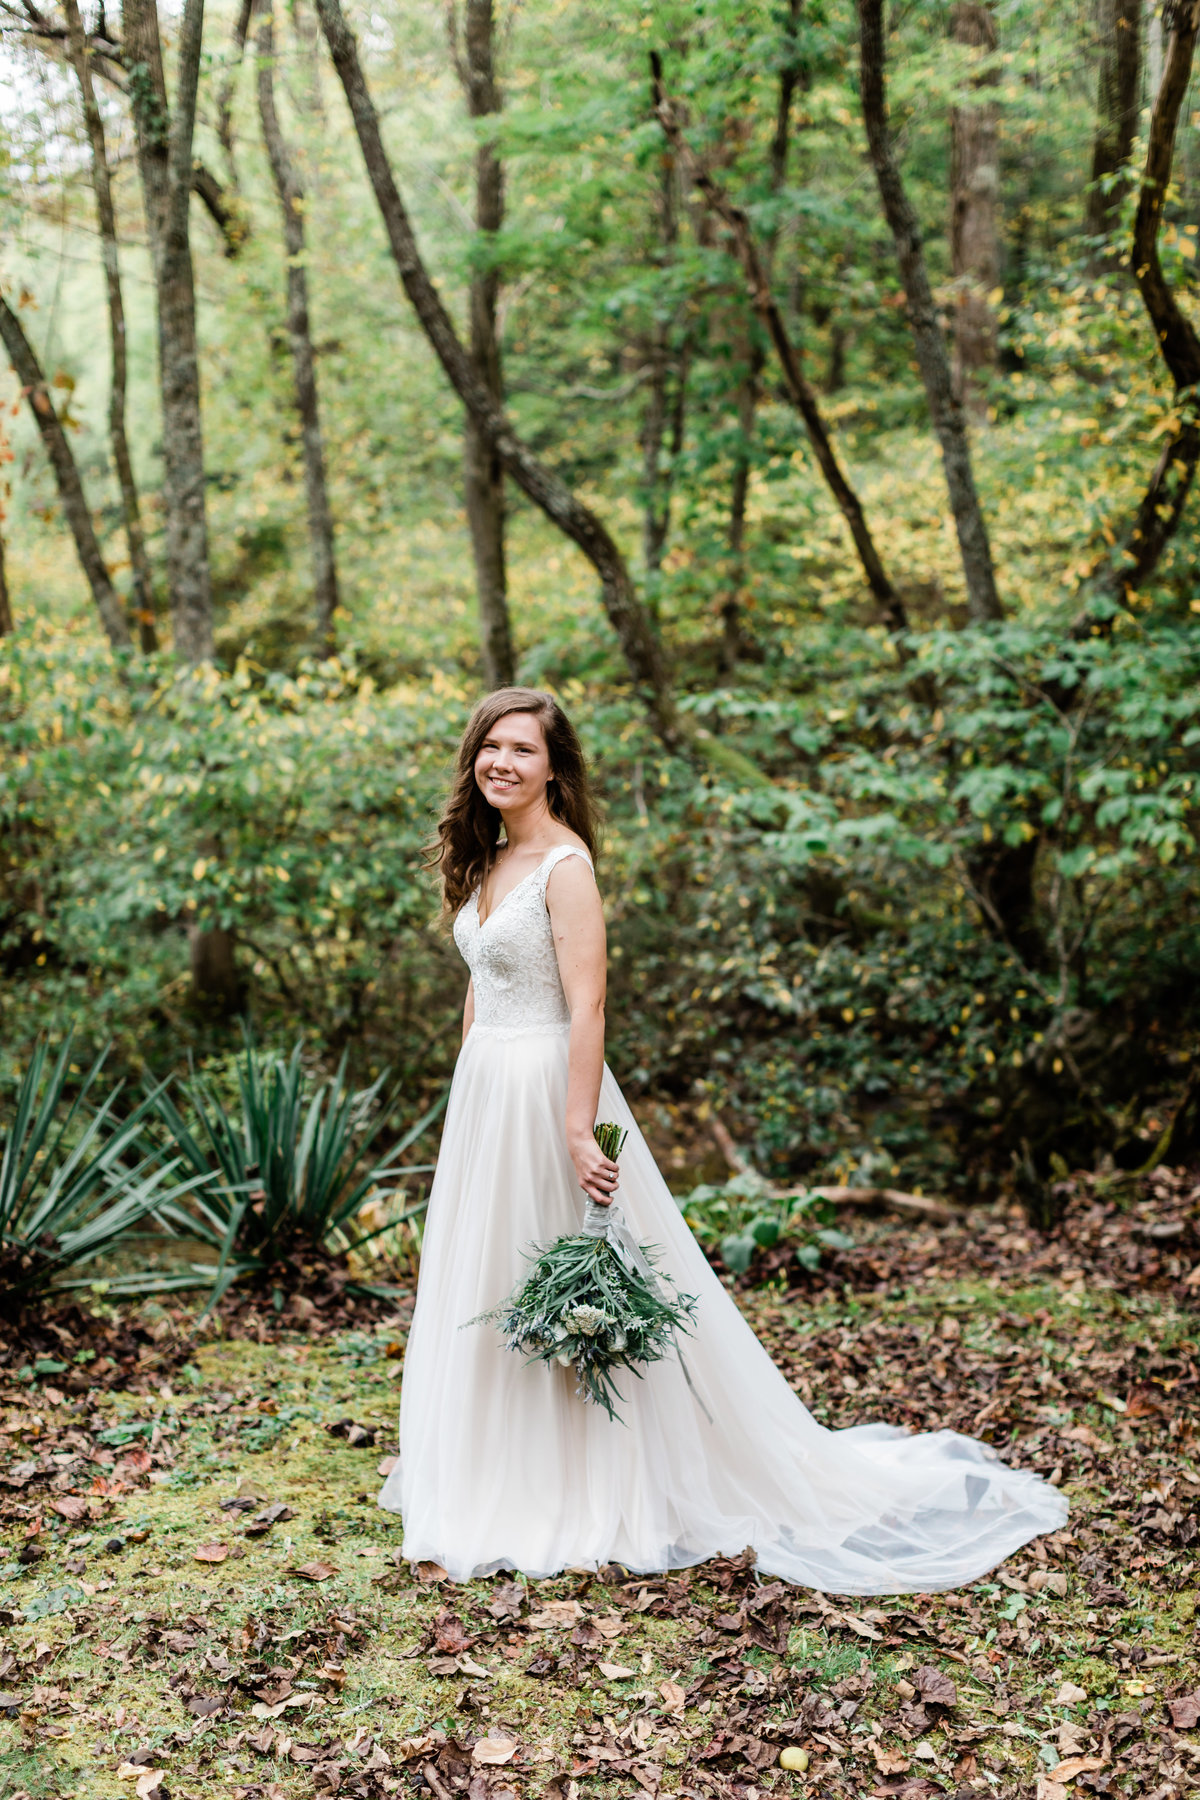 Danielle-Defayette-Photography-Mountain-Laurel-Farm-Wedding-Virginia-55